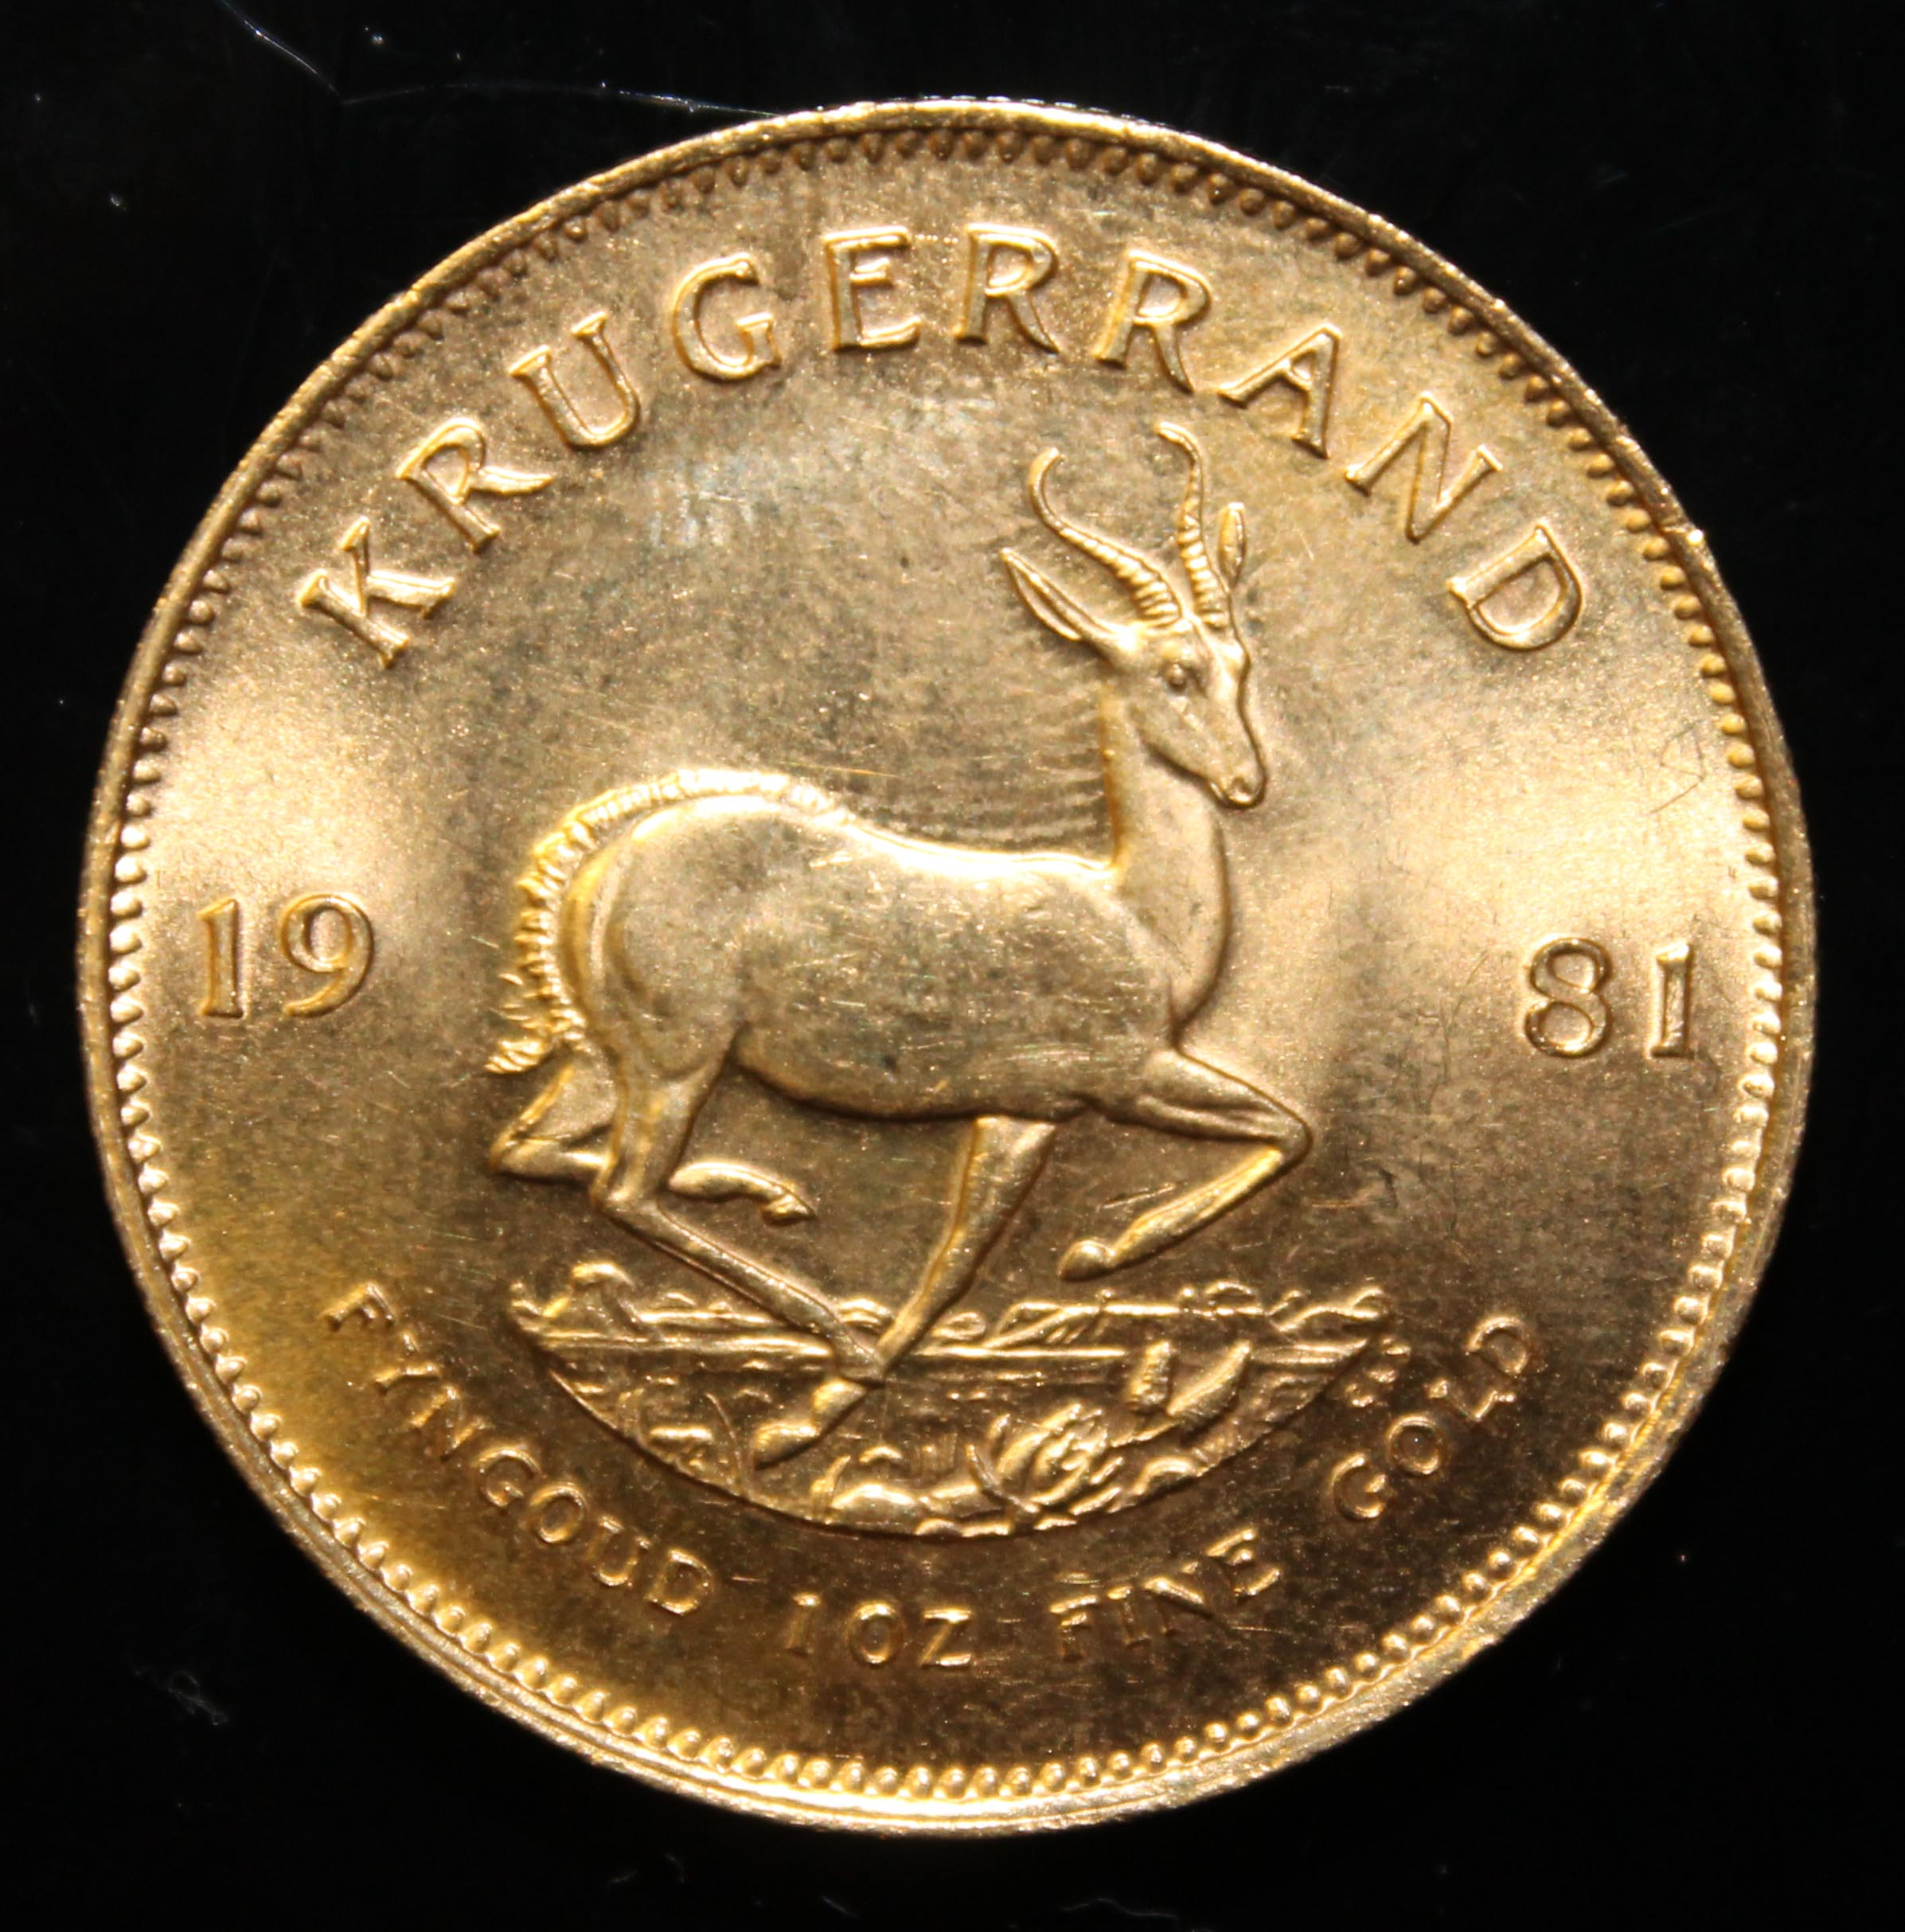 South Africa, 1981 Krugerrand, 1 oz. fine gold (91.67%) ONLY 10% BUYER'S PREMIUM (INCLUSIVE OF - Image 2 of 2